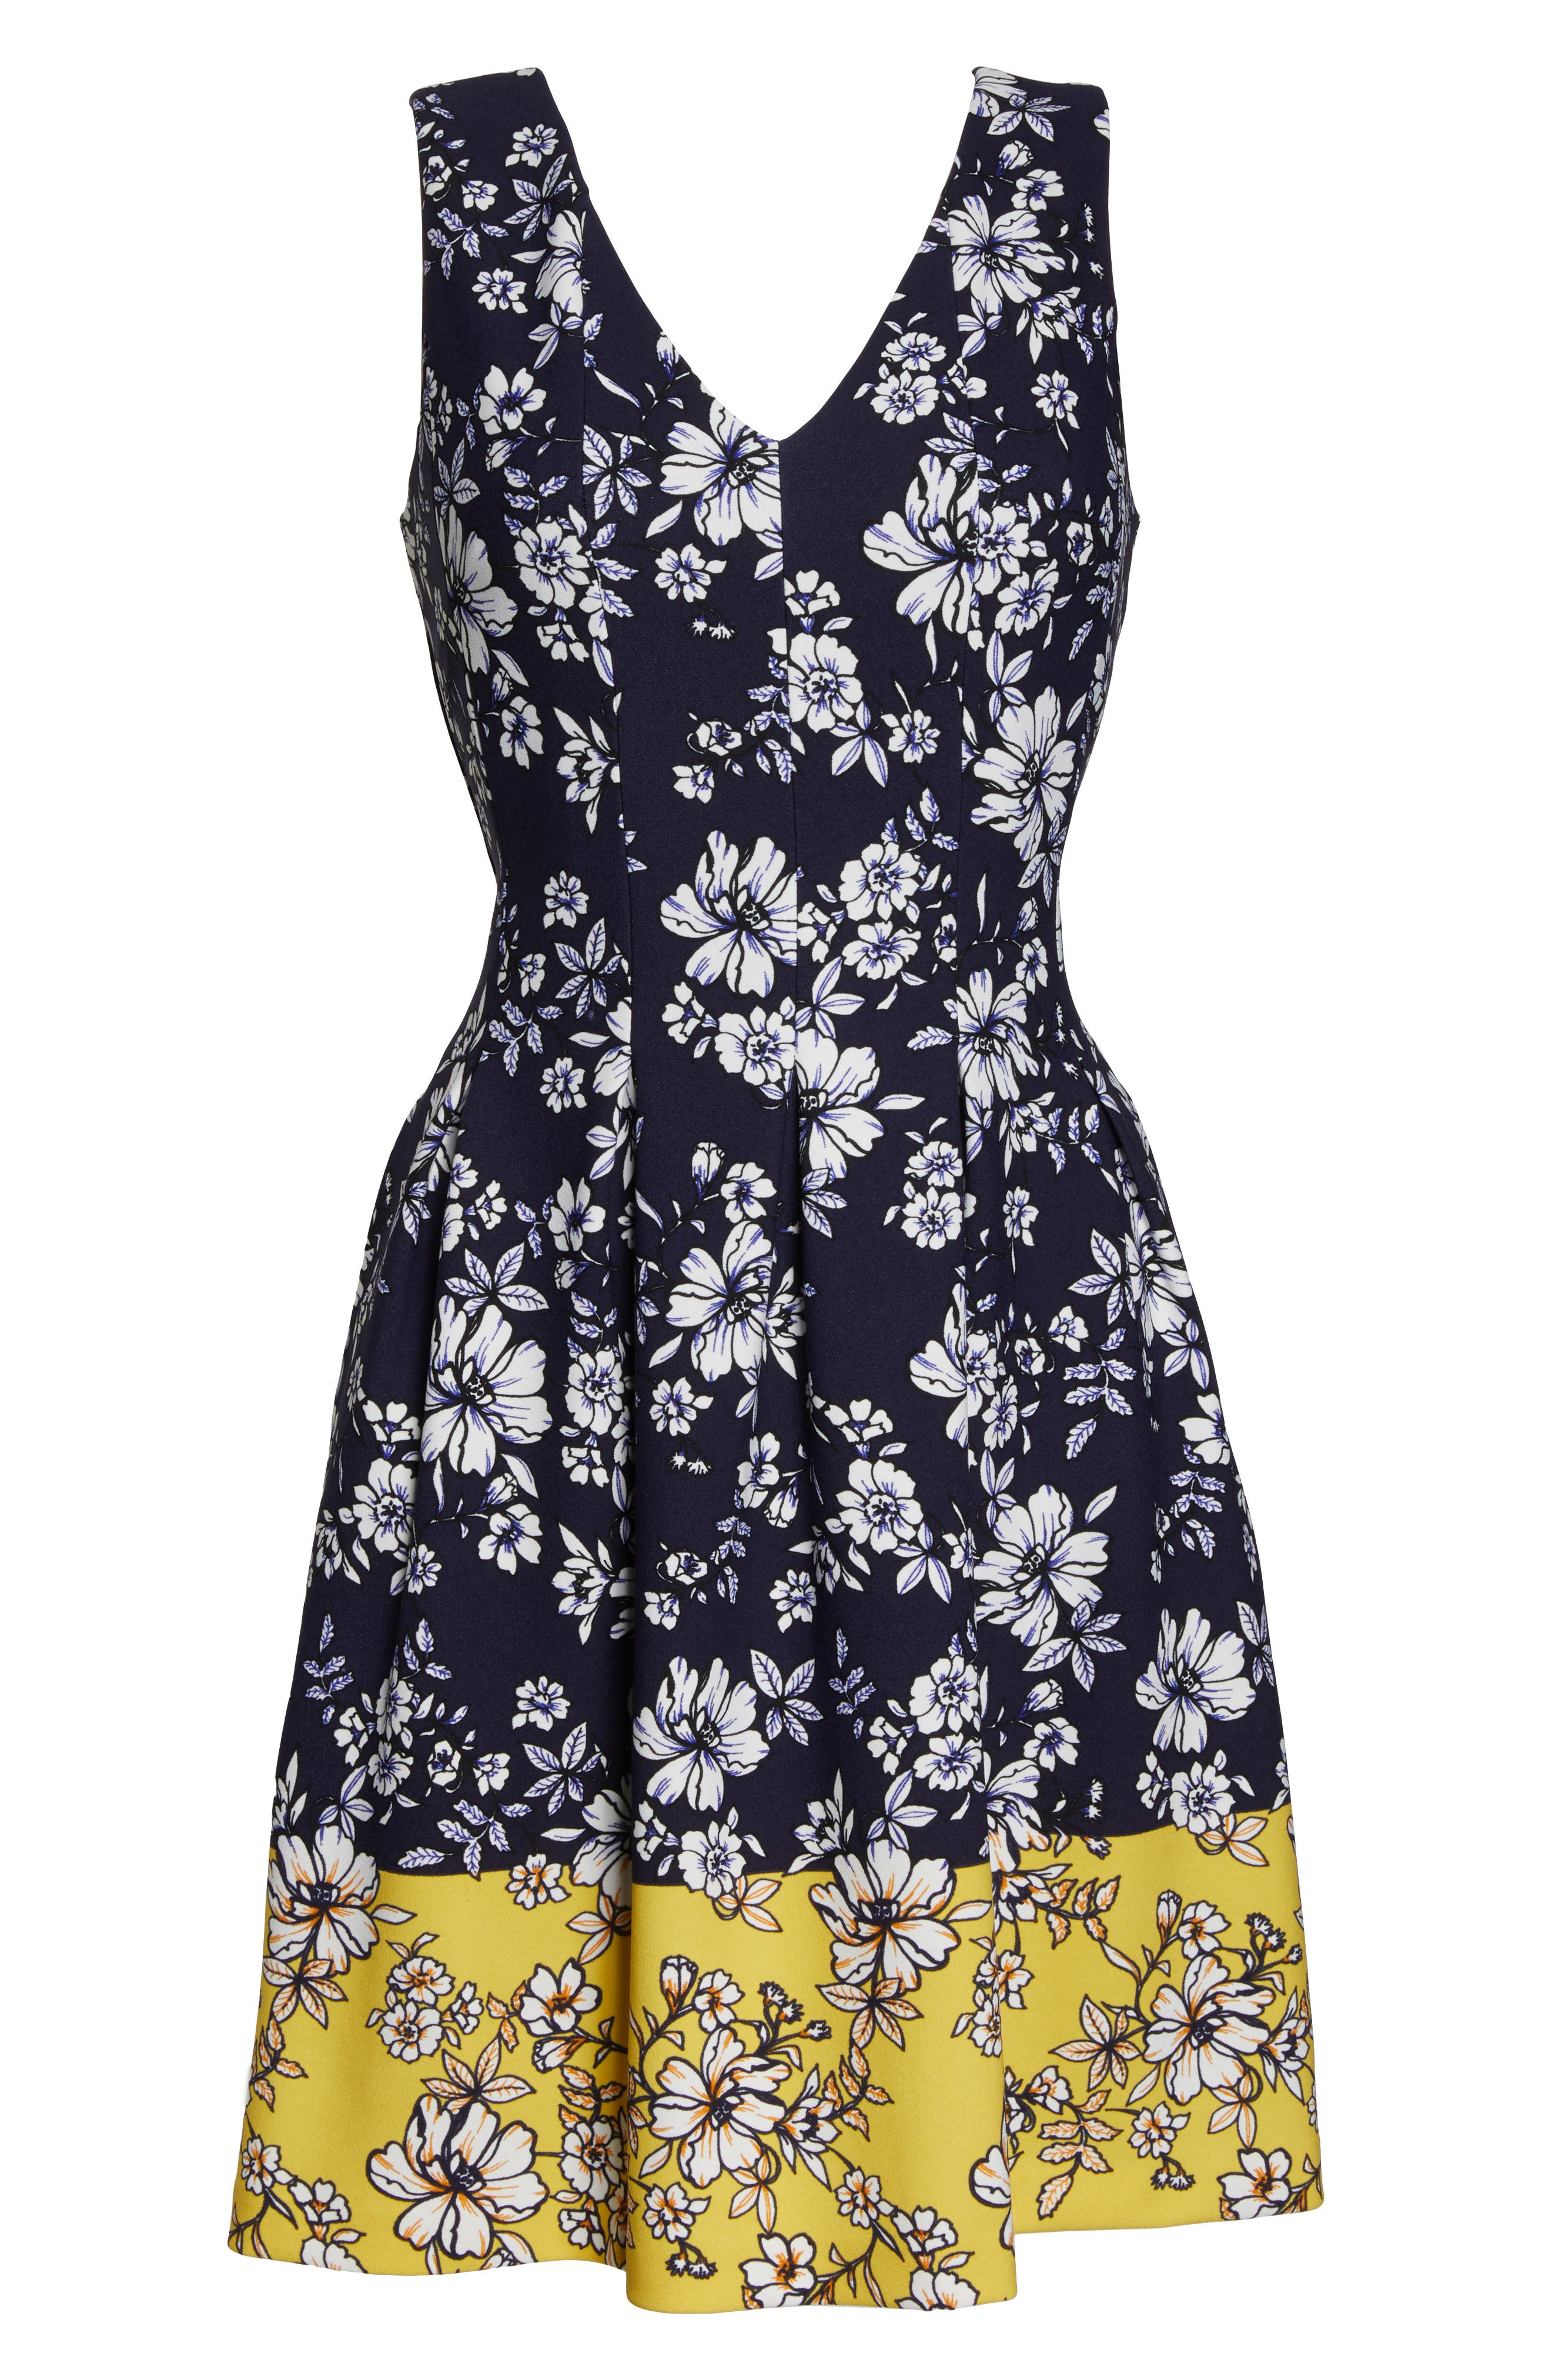 VINCE CAMUTO, Floral Print Pleated Fit & Flare Dress, Alternate thumbnail 7, color, NAVY/ YELLOW